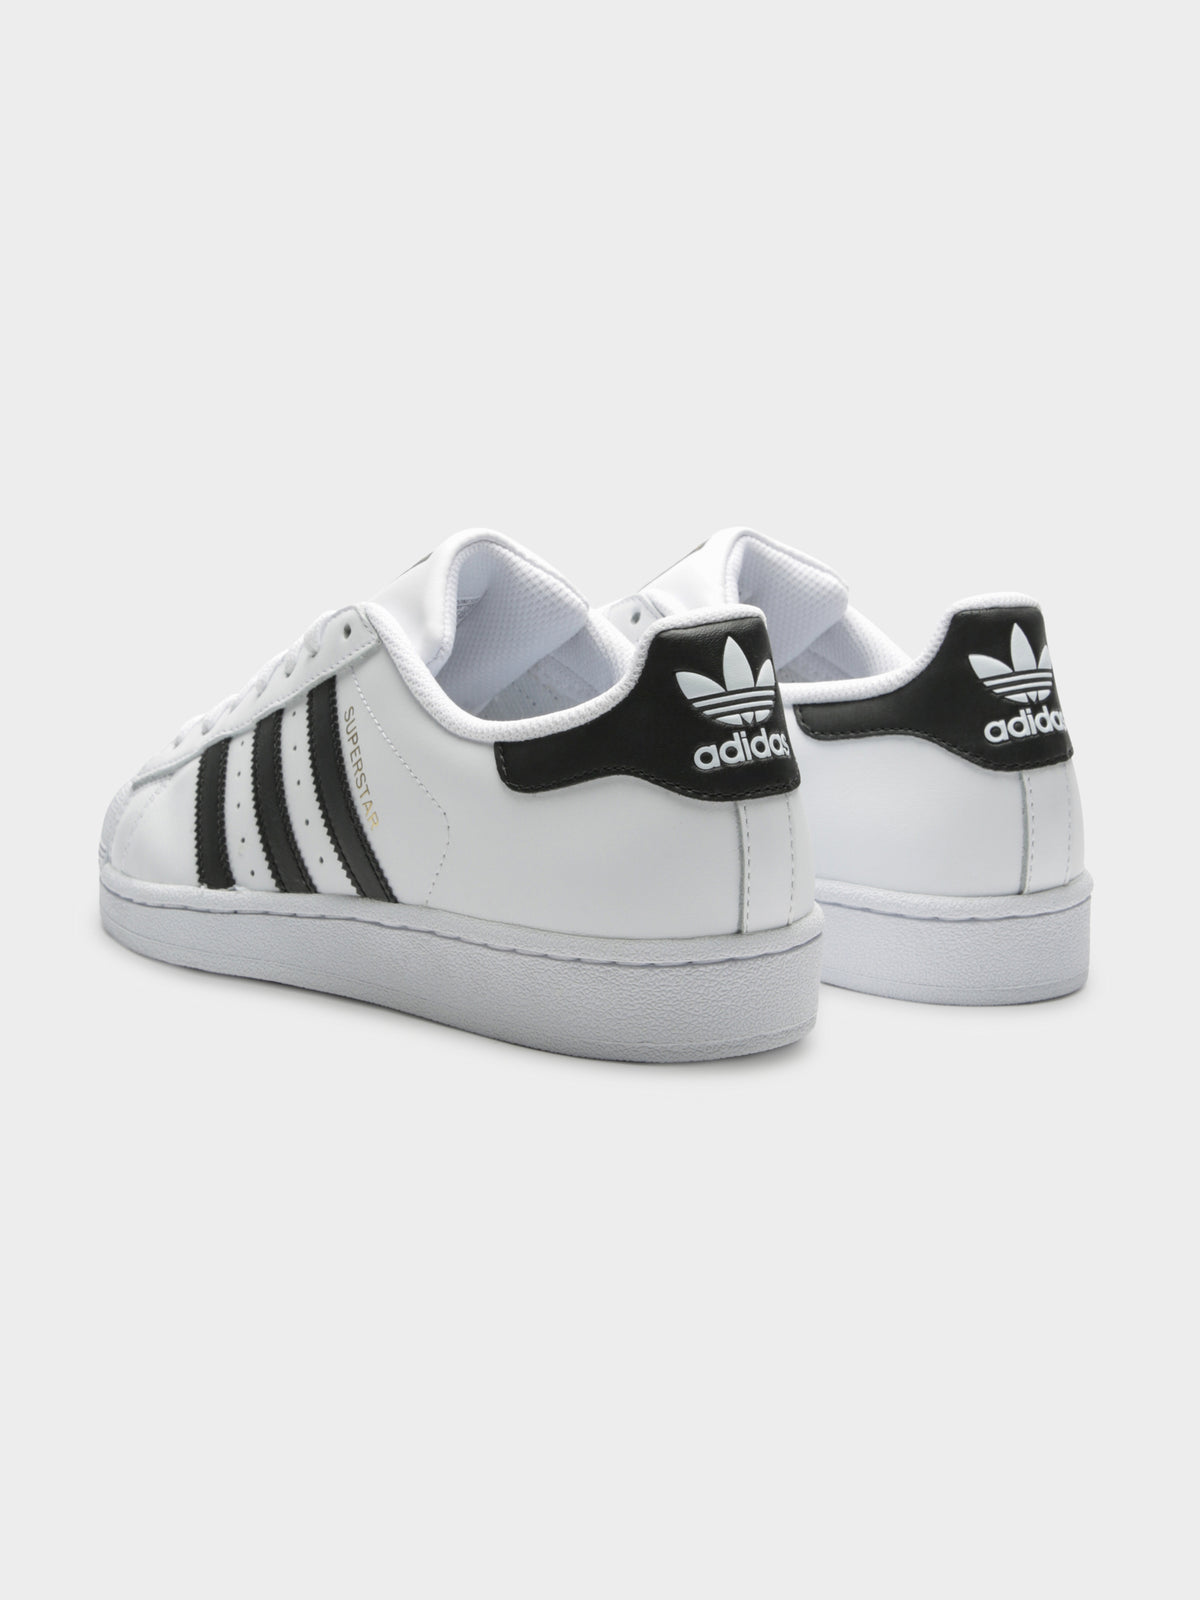 Unisex Superstar Sneakers in White and Black